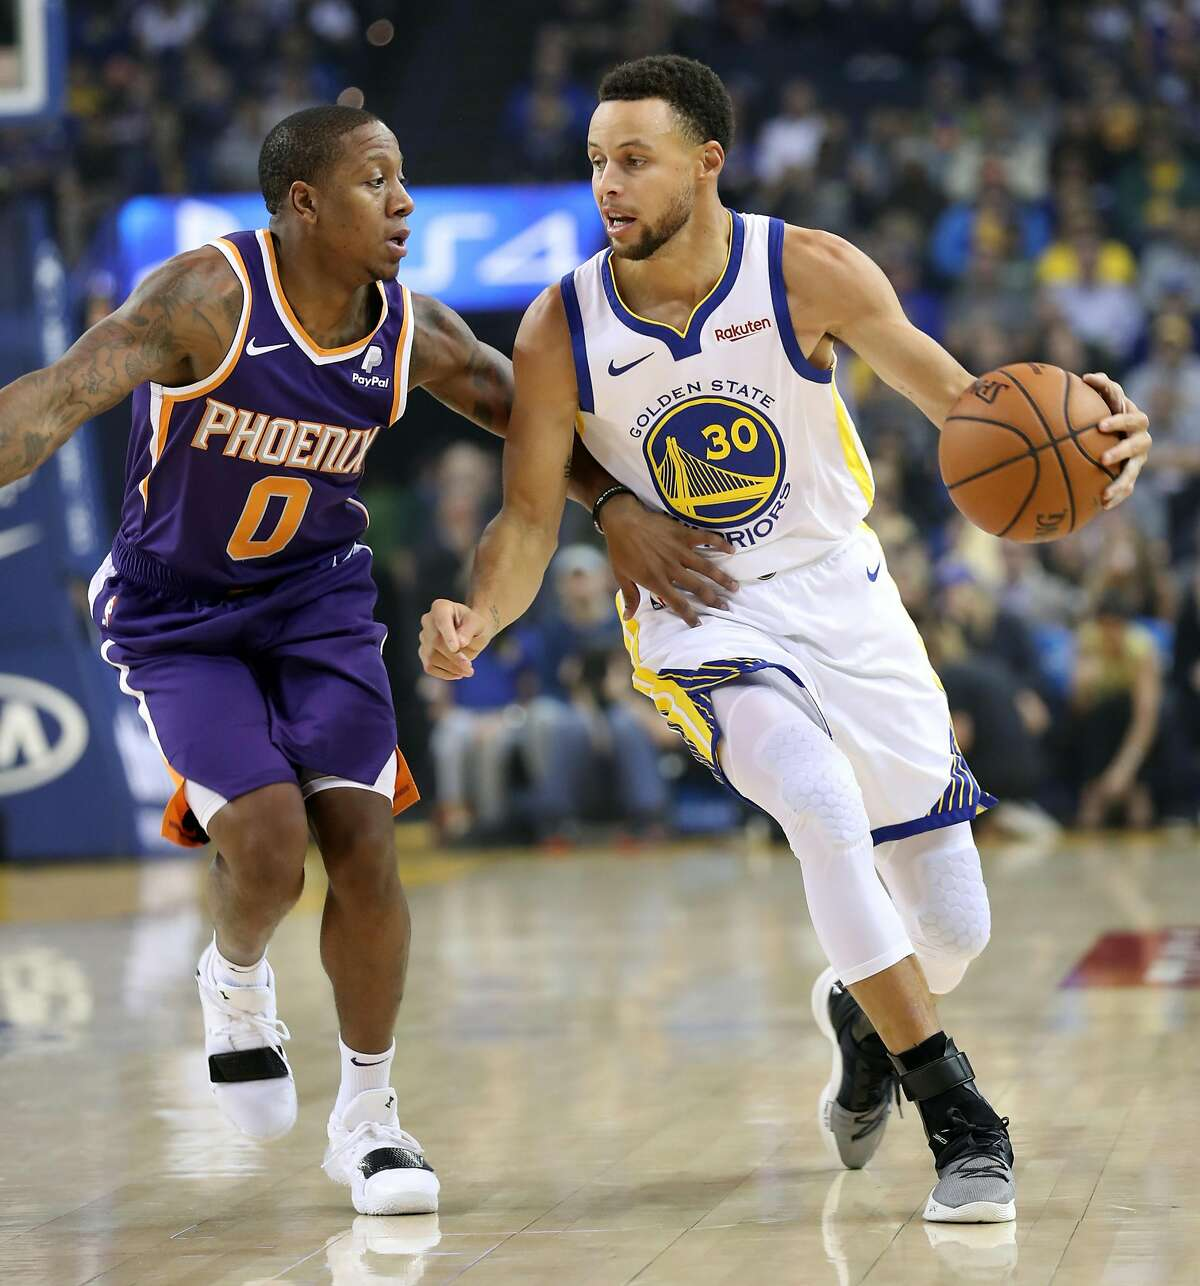 Golden State Warriors' Stephen Curry is guarded by Phoenix Suns' Isaiah Canaan during NBA game at Oracle Arena in Oakland, Calif.. on Monday, October 22, 2018.